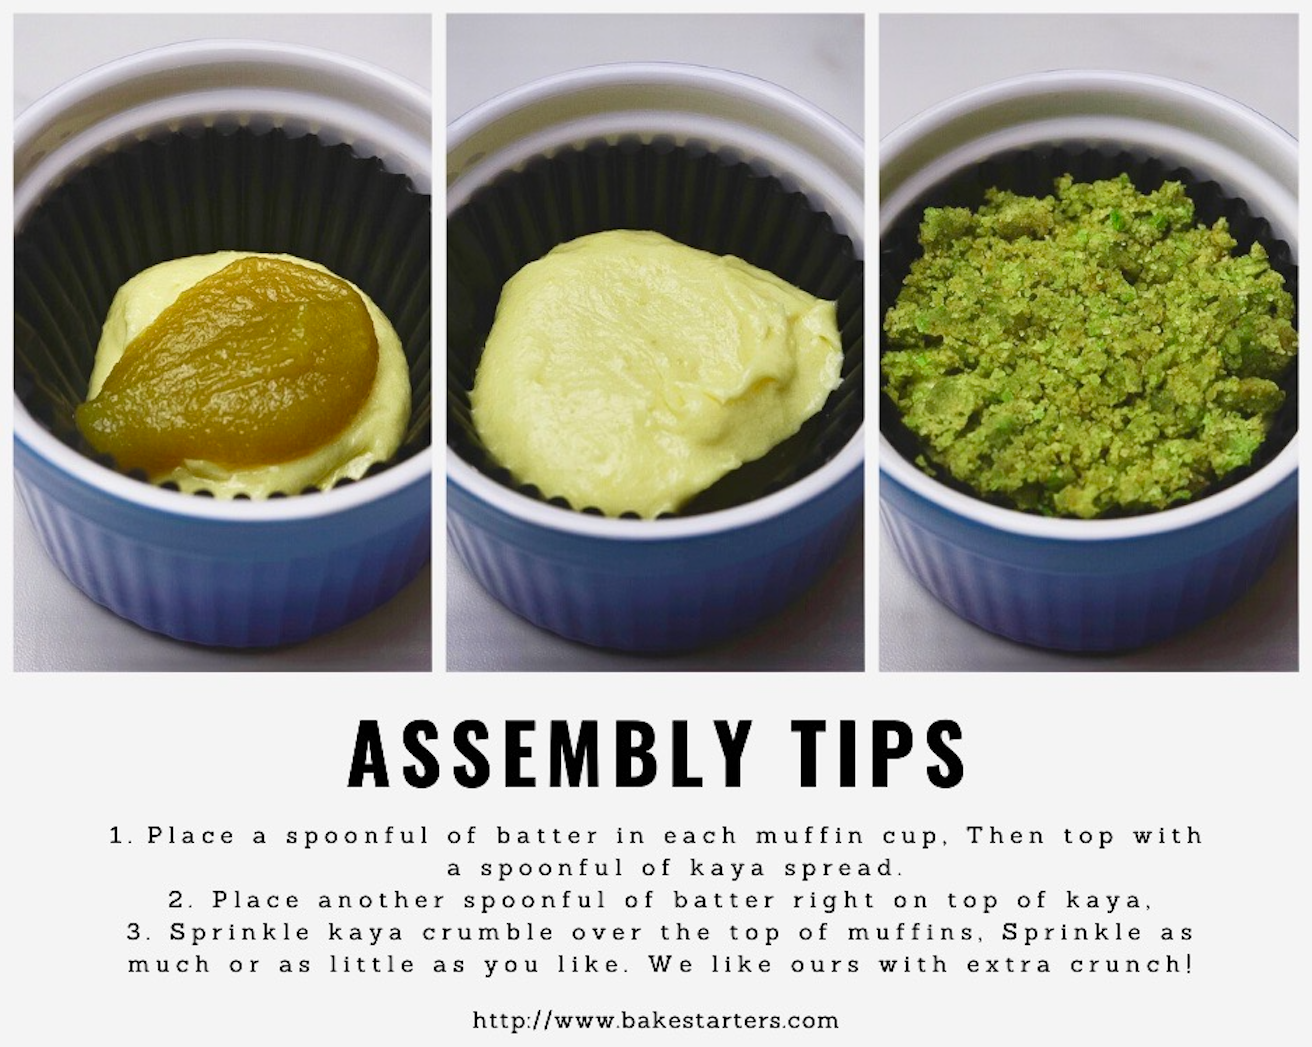 assembly tips for kaya muffins